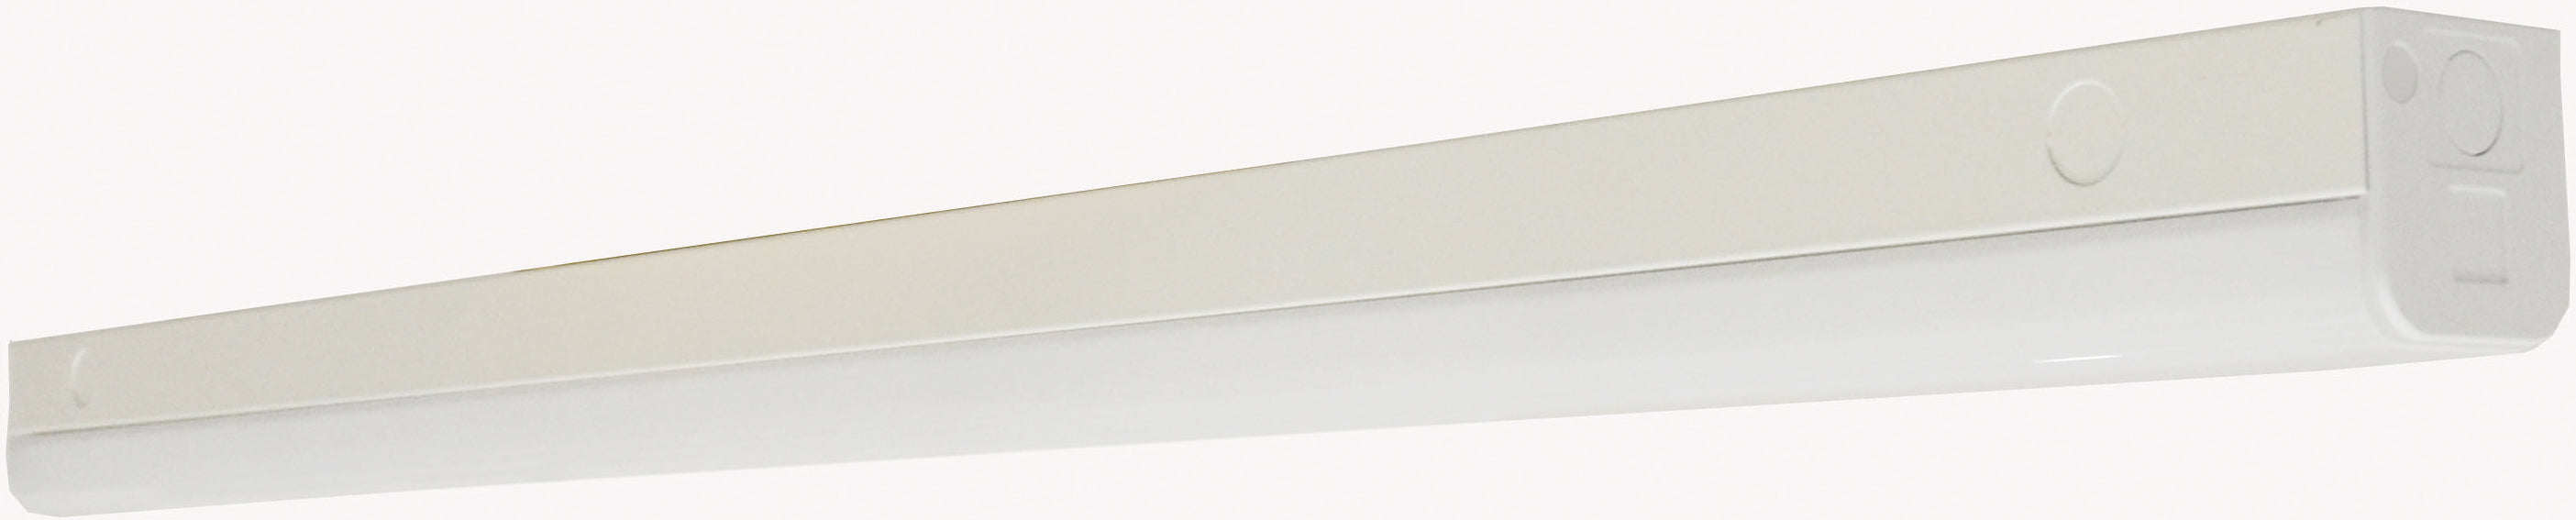 """Nuvo LED 38w 48"""" Slim Strip Light Fixture w/ knockout in White Finish 4000k"""